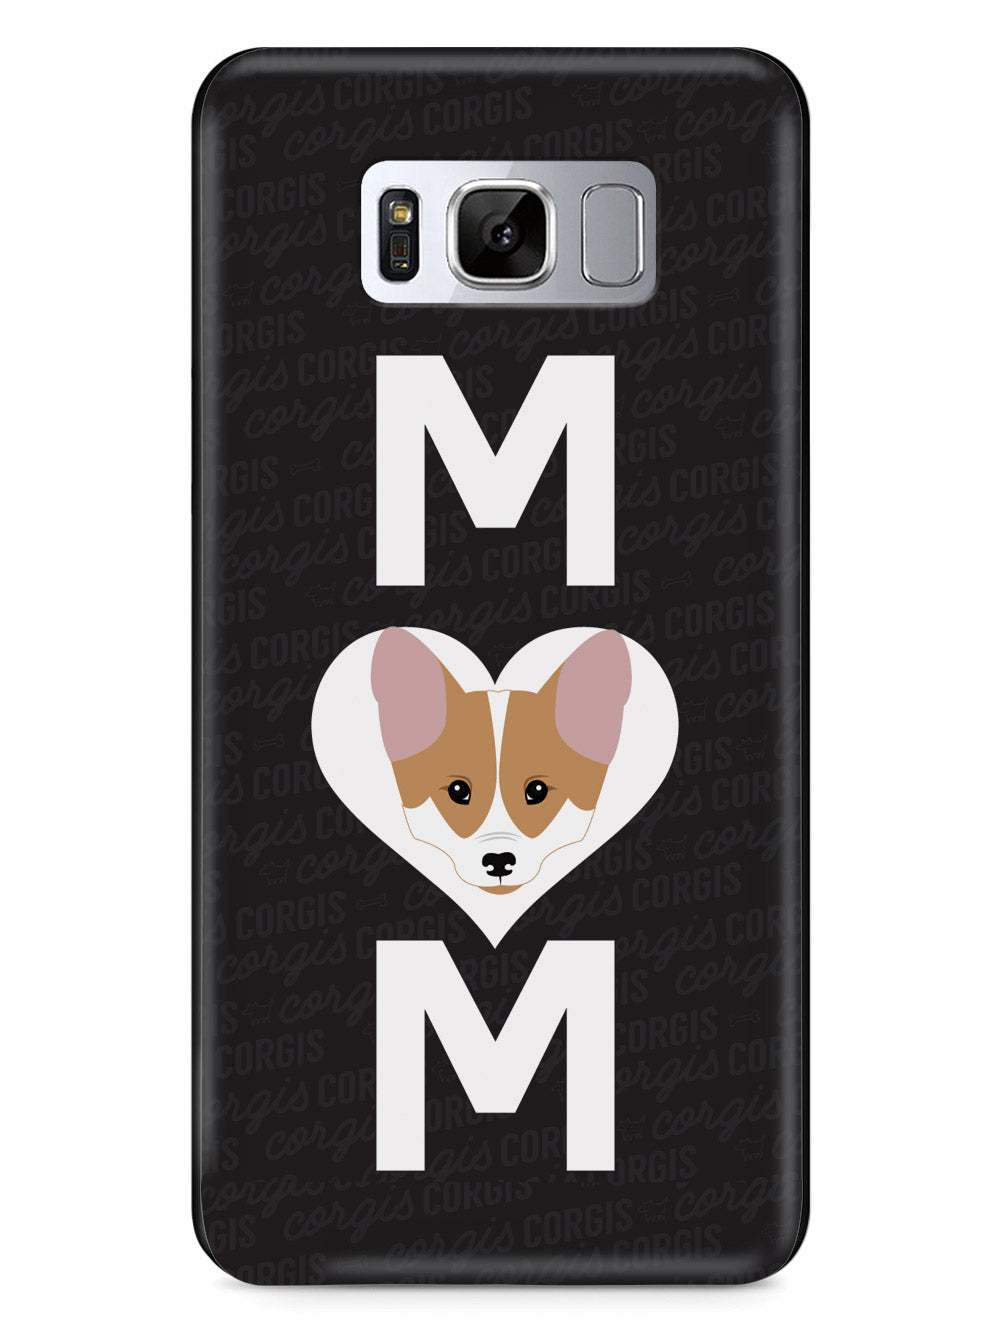 Corgi Mom Case